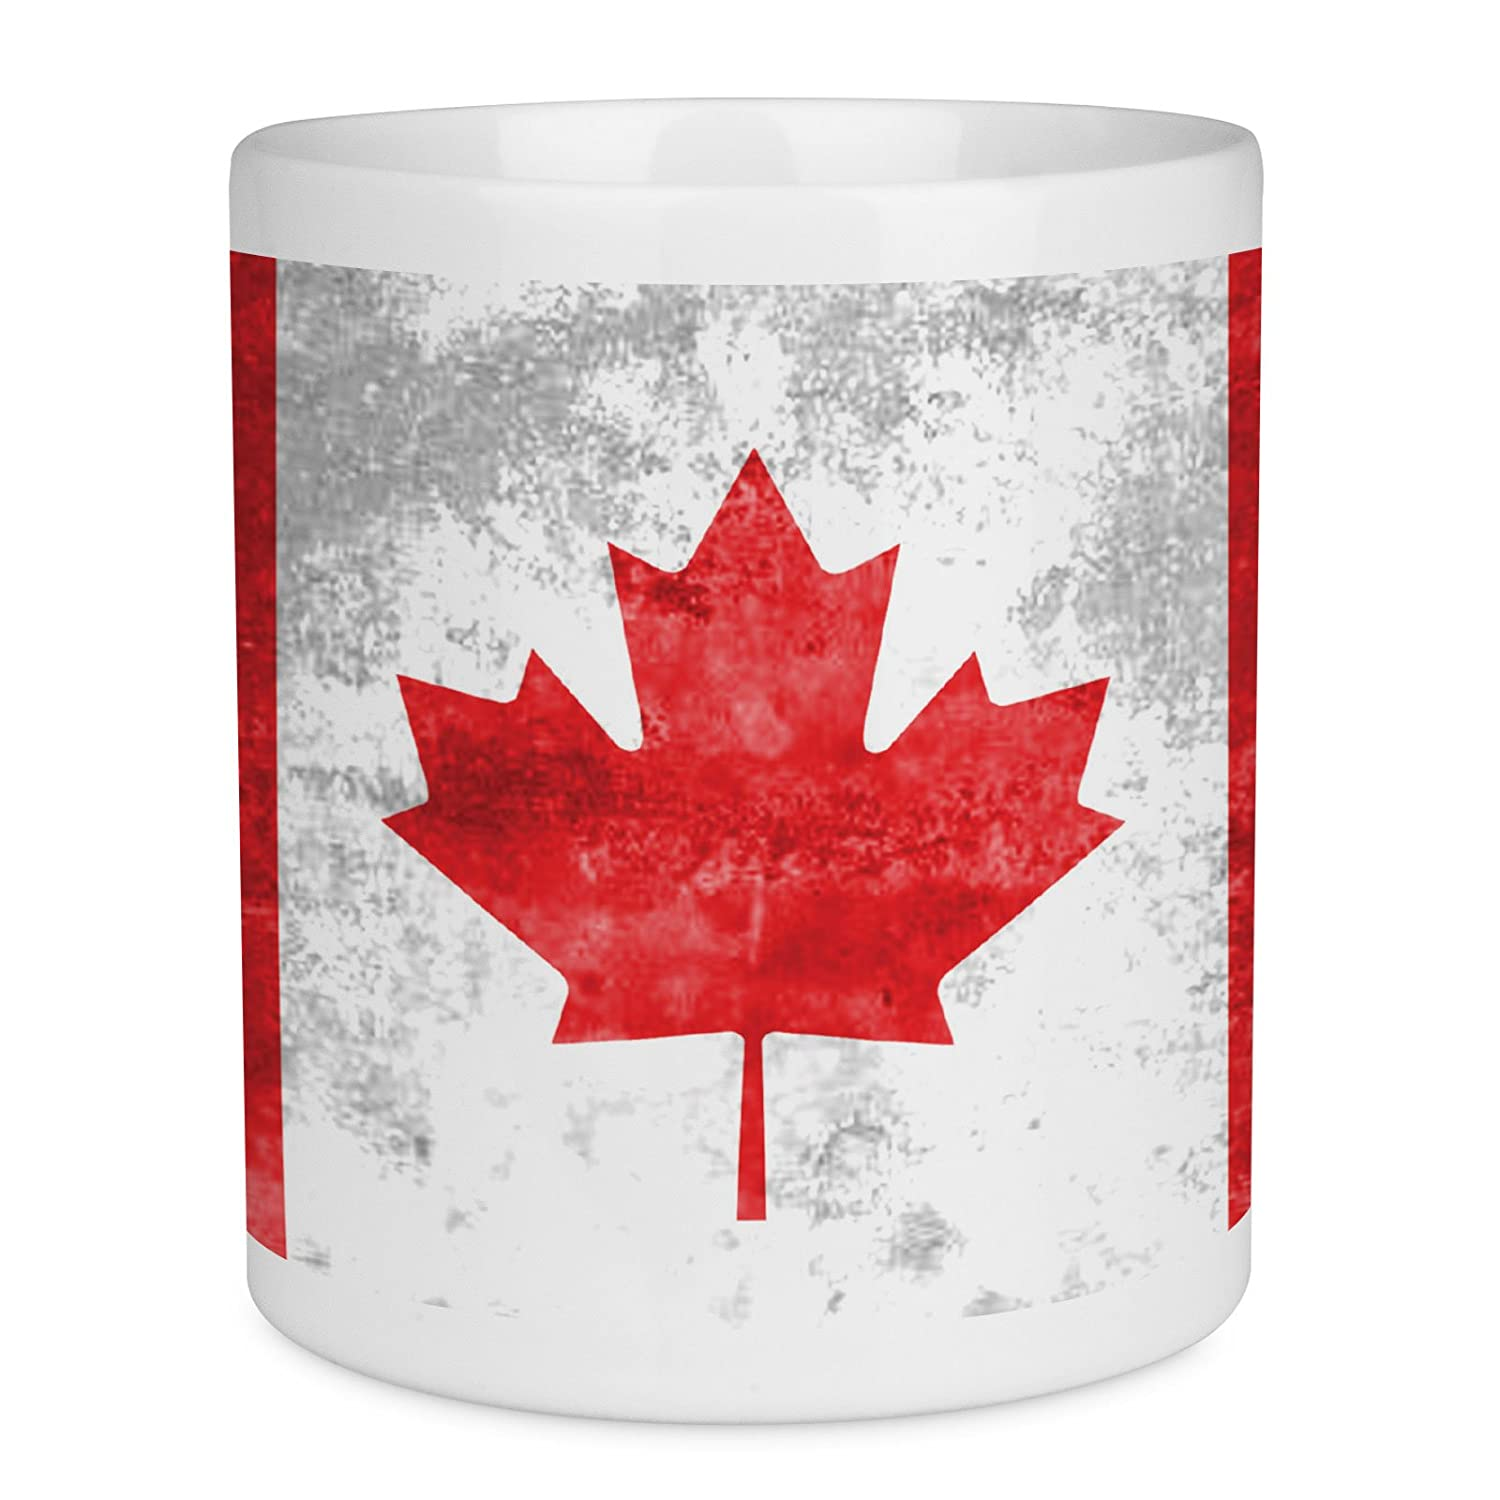 Made in England Vintage Tall CANADA Red Maple Leaf Pattern Coffee Mug